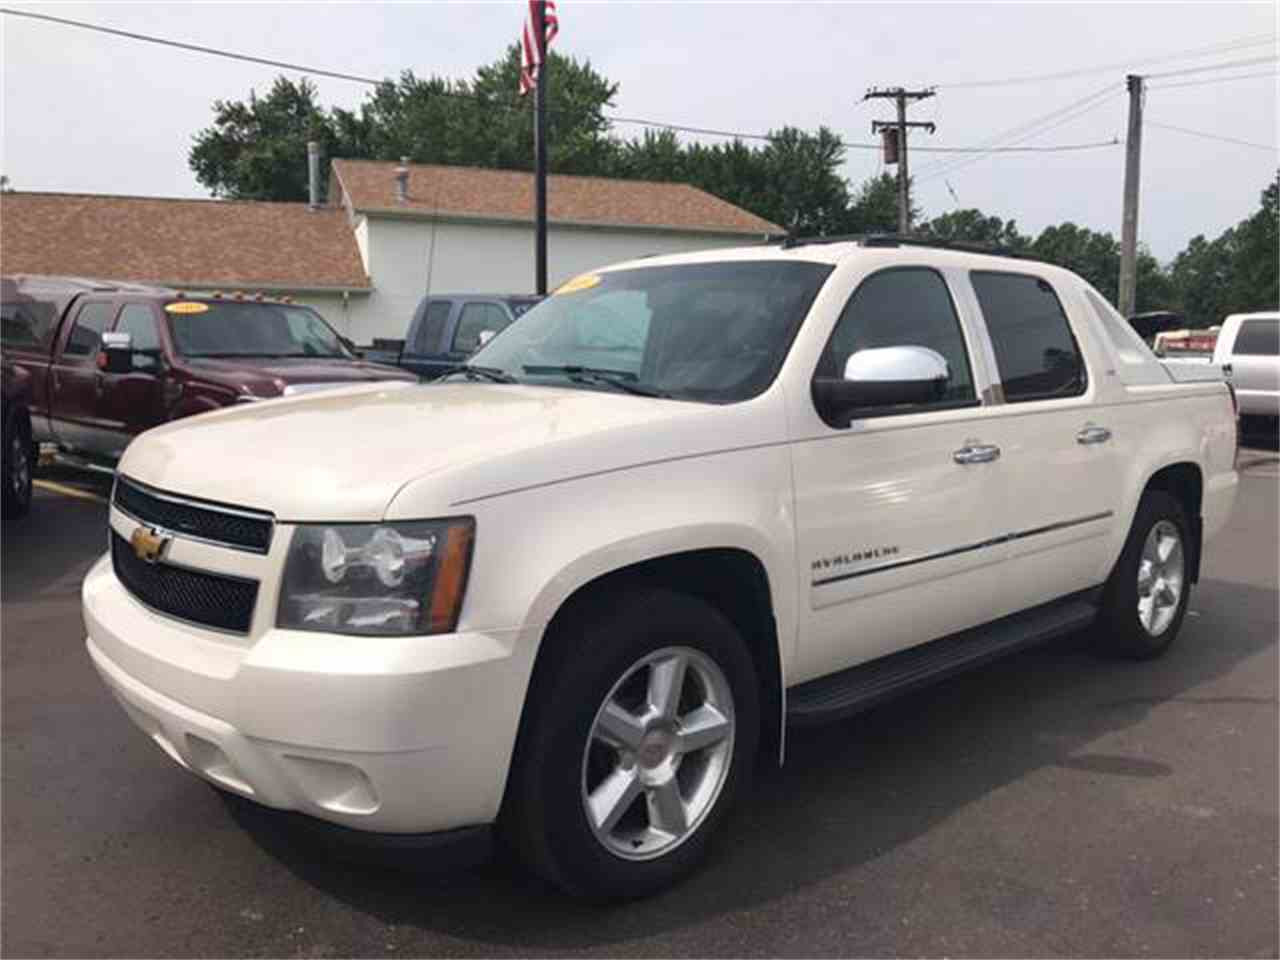 Avalanche chevy avalanche 2010 : Avalanche » 2010 Chevy Avalanche For Sale - Old Chevy Photos ...